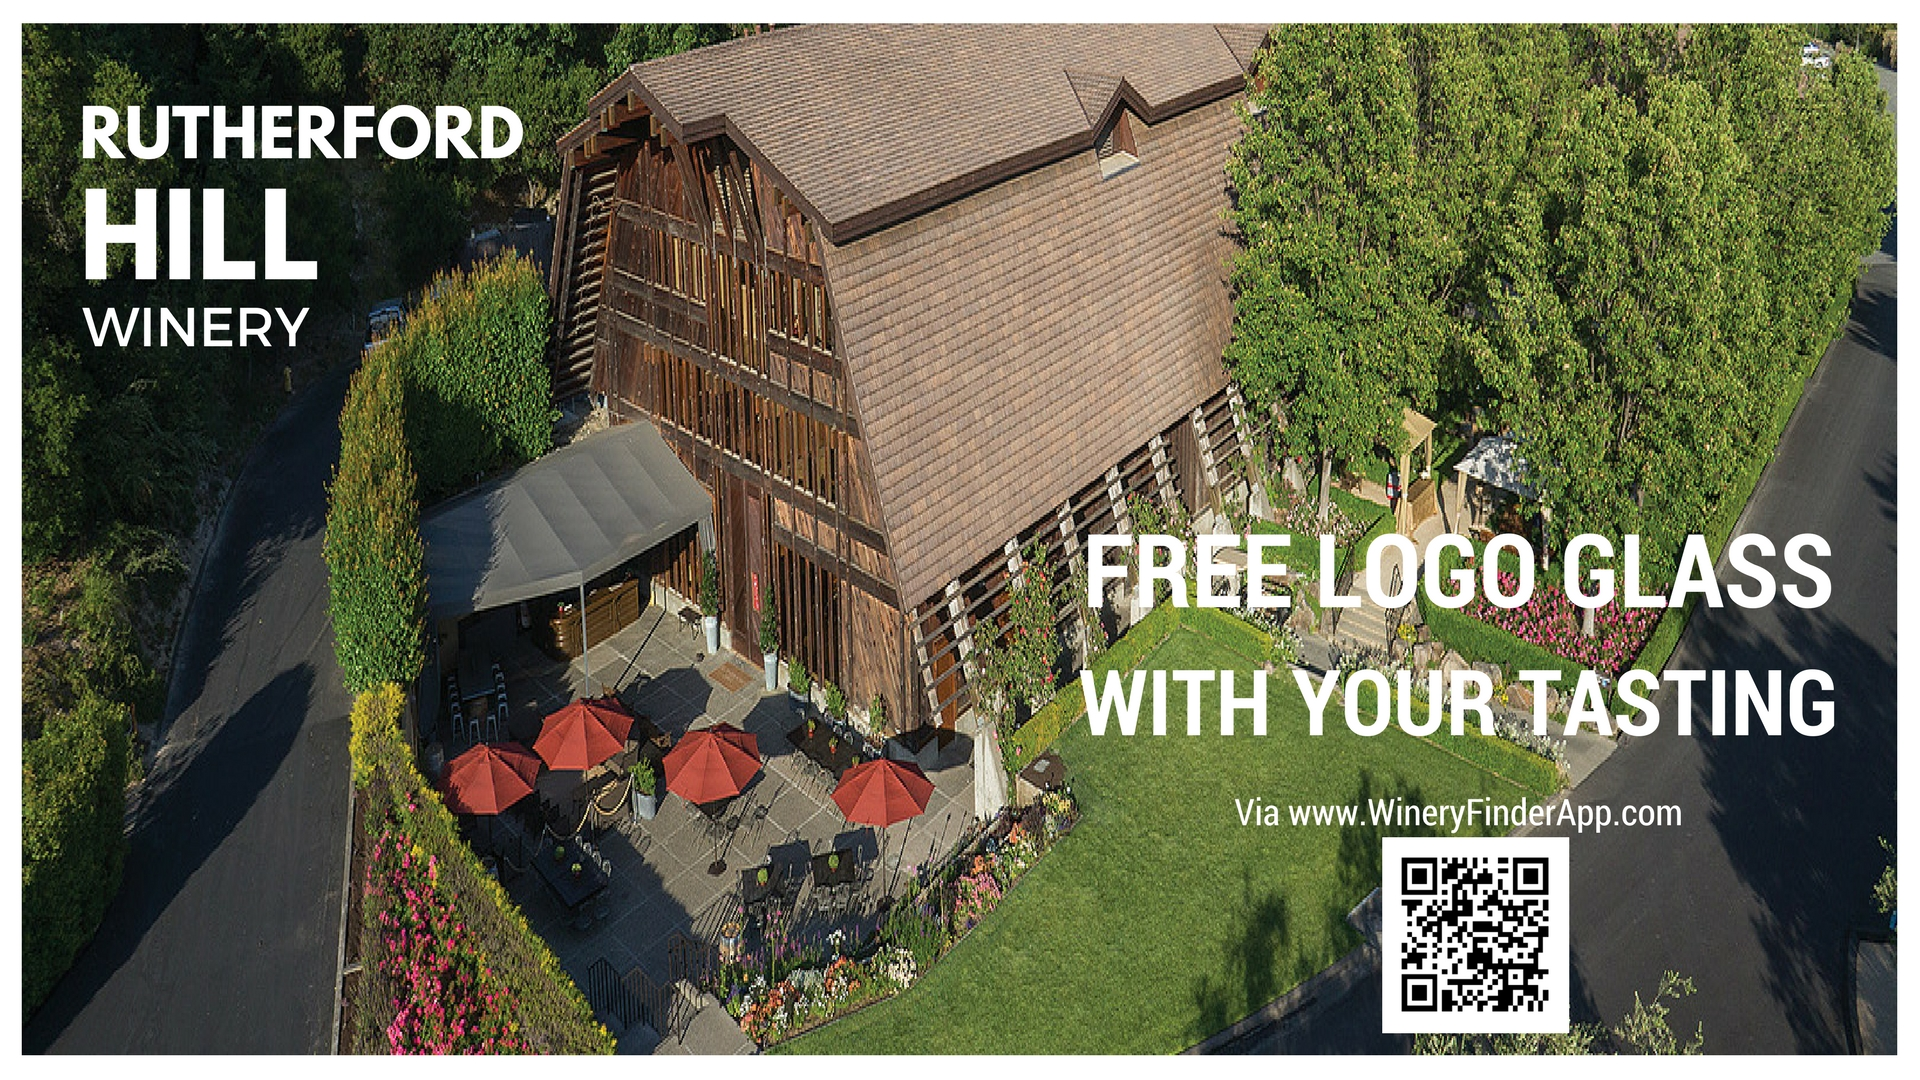 Rutherford Hill Winery Coupon